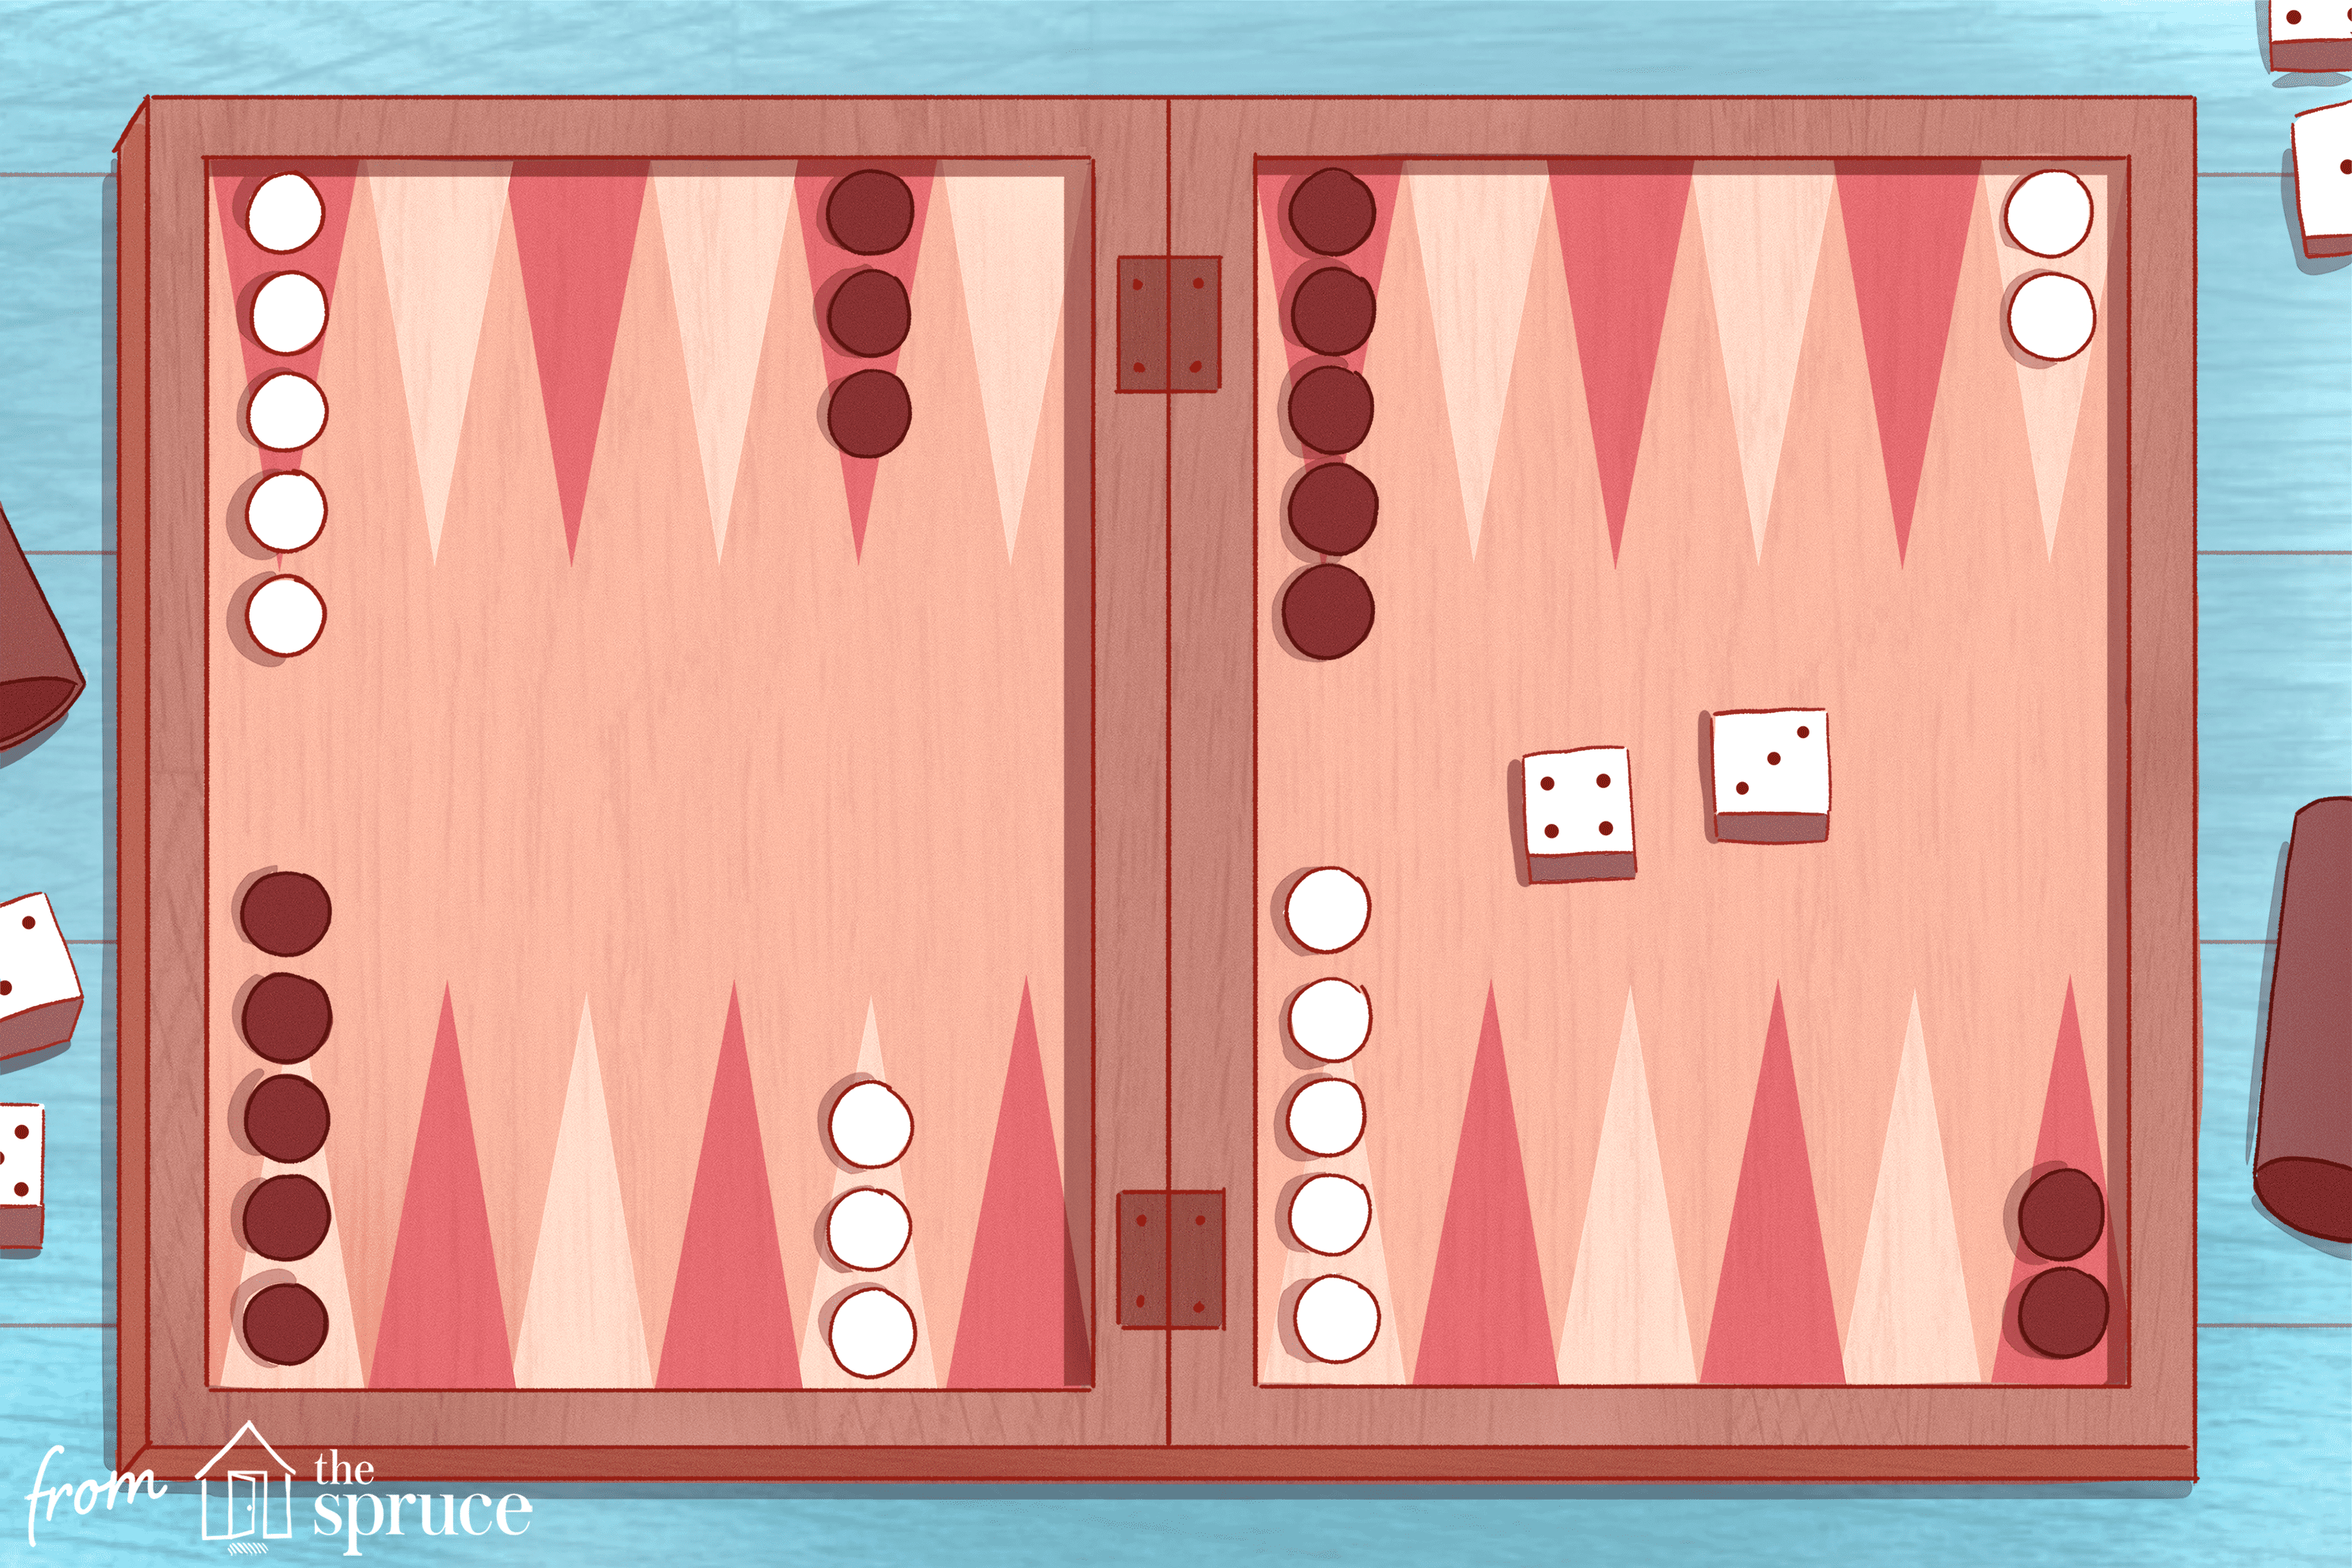 Setup For Backgammon